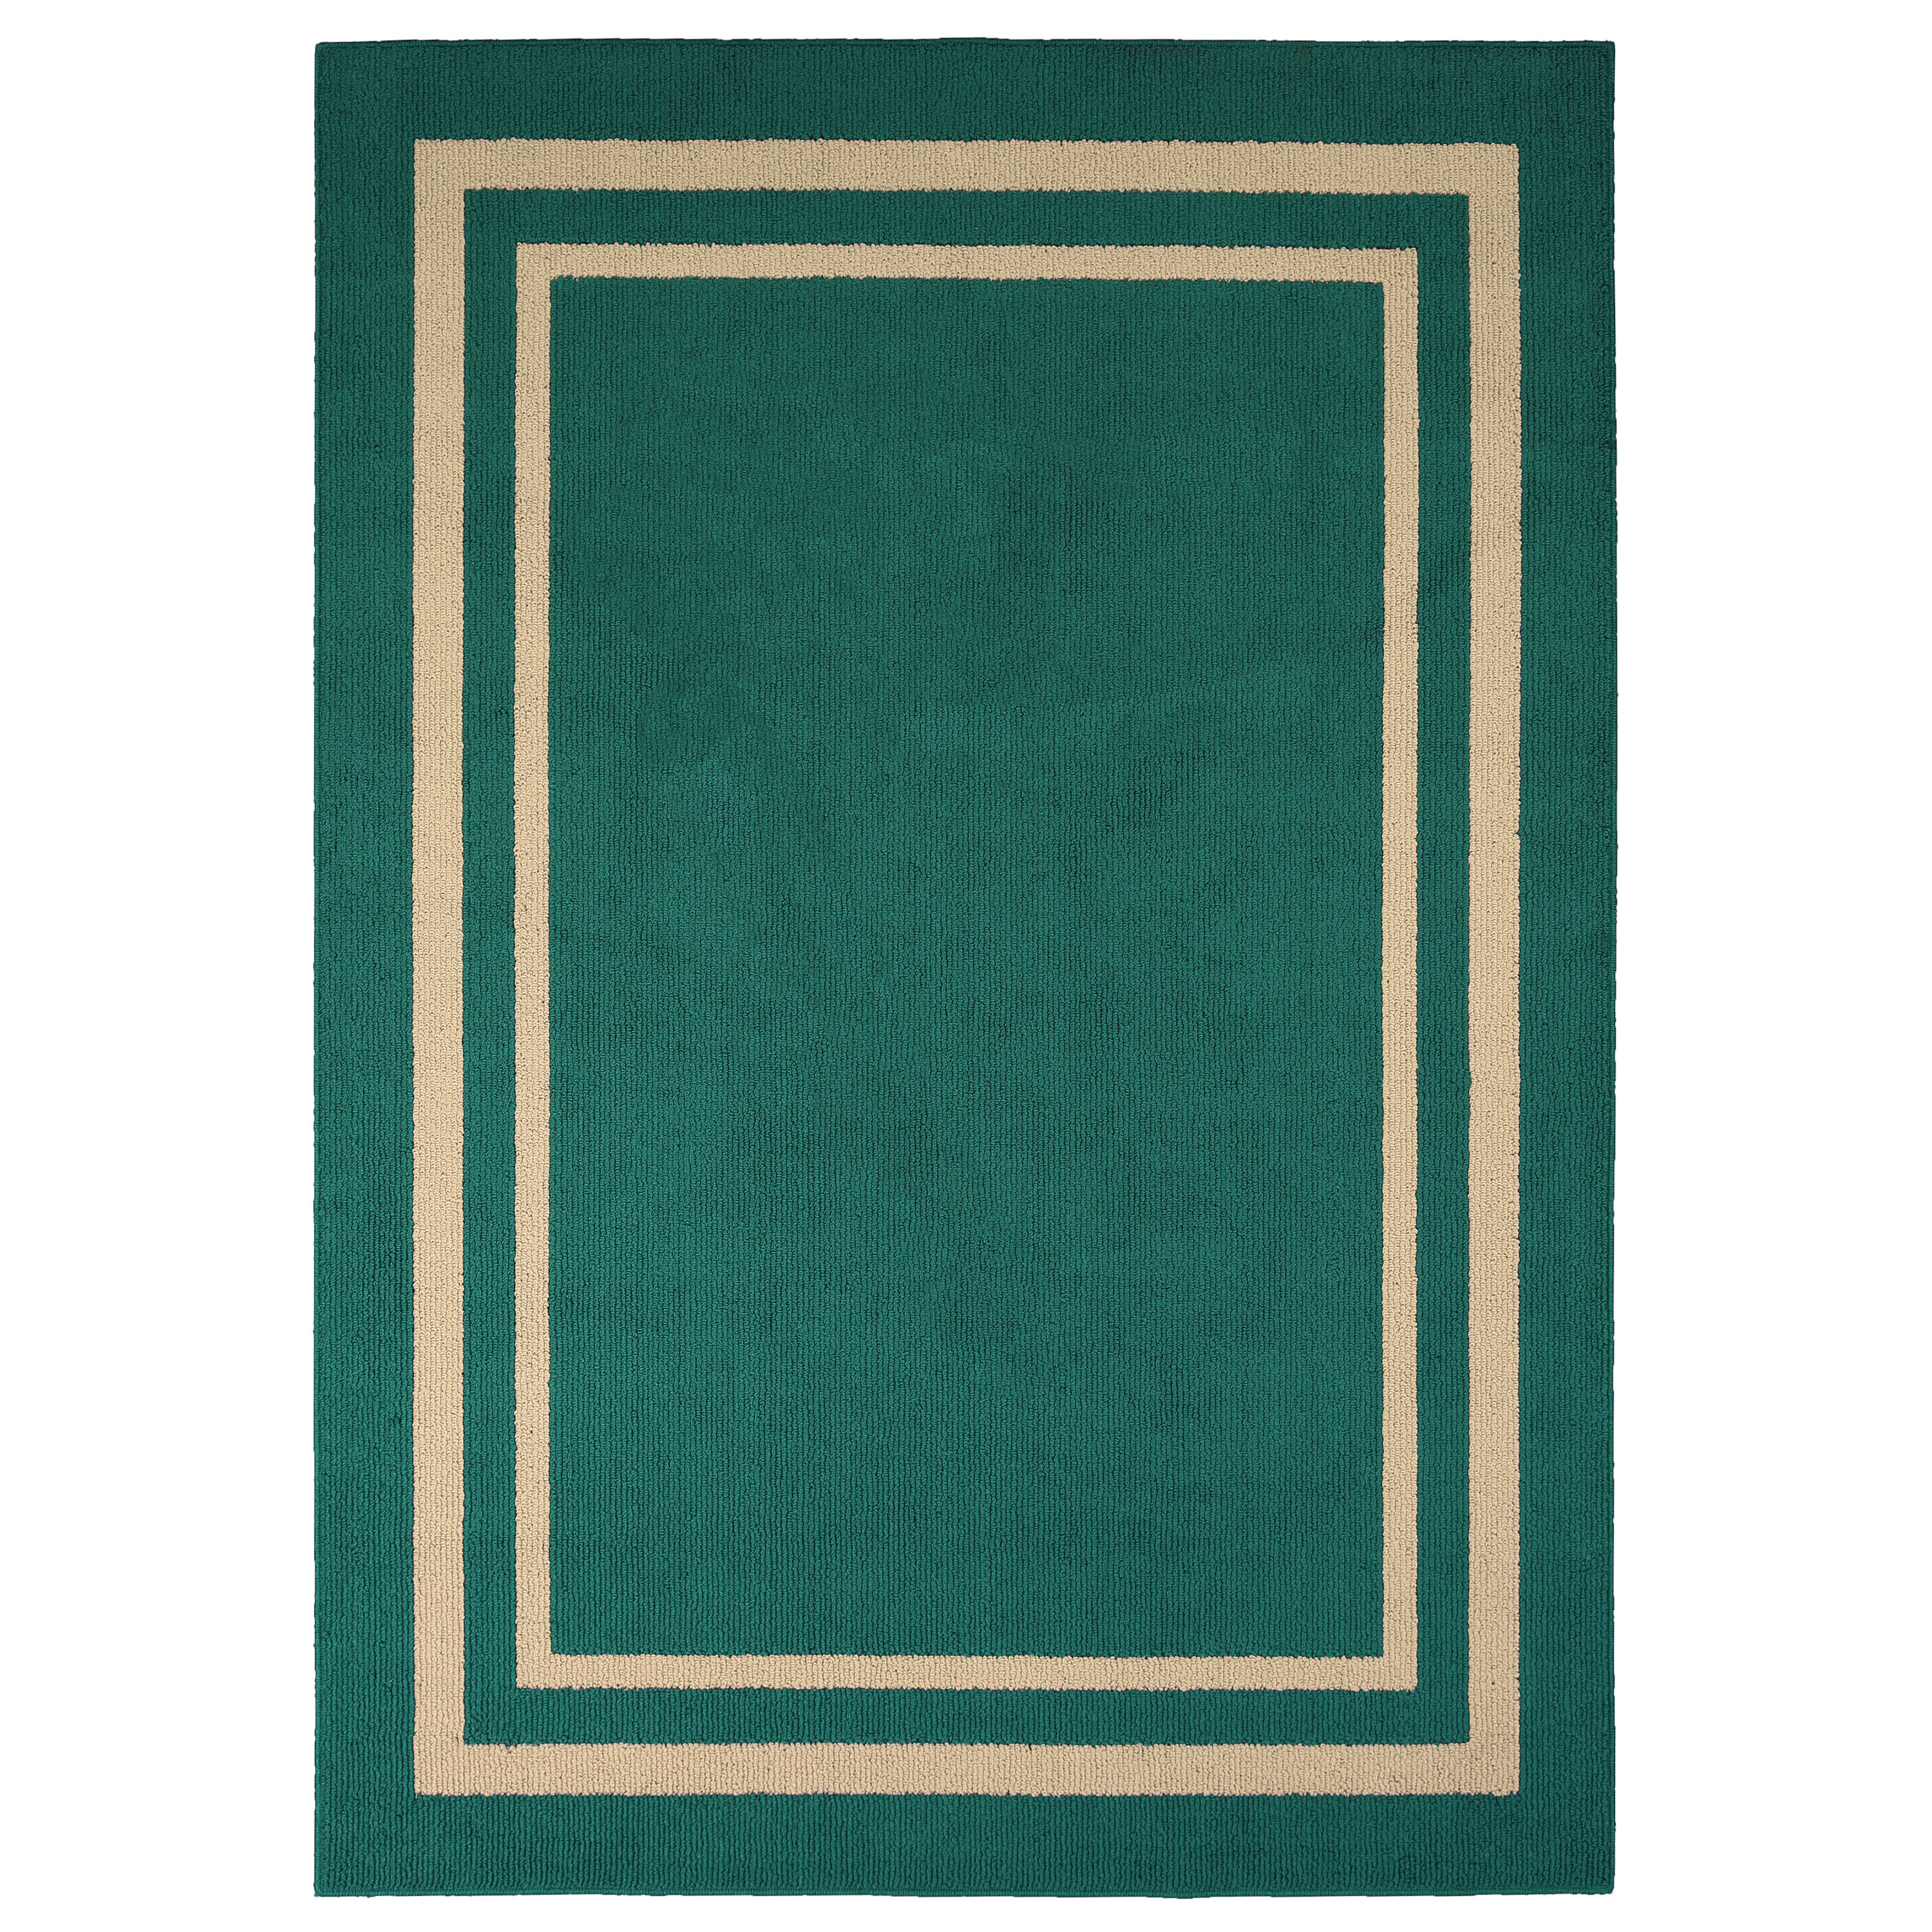 Mainstays Frame Border Area Rug or Runner, Multiple Sizes and Colors